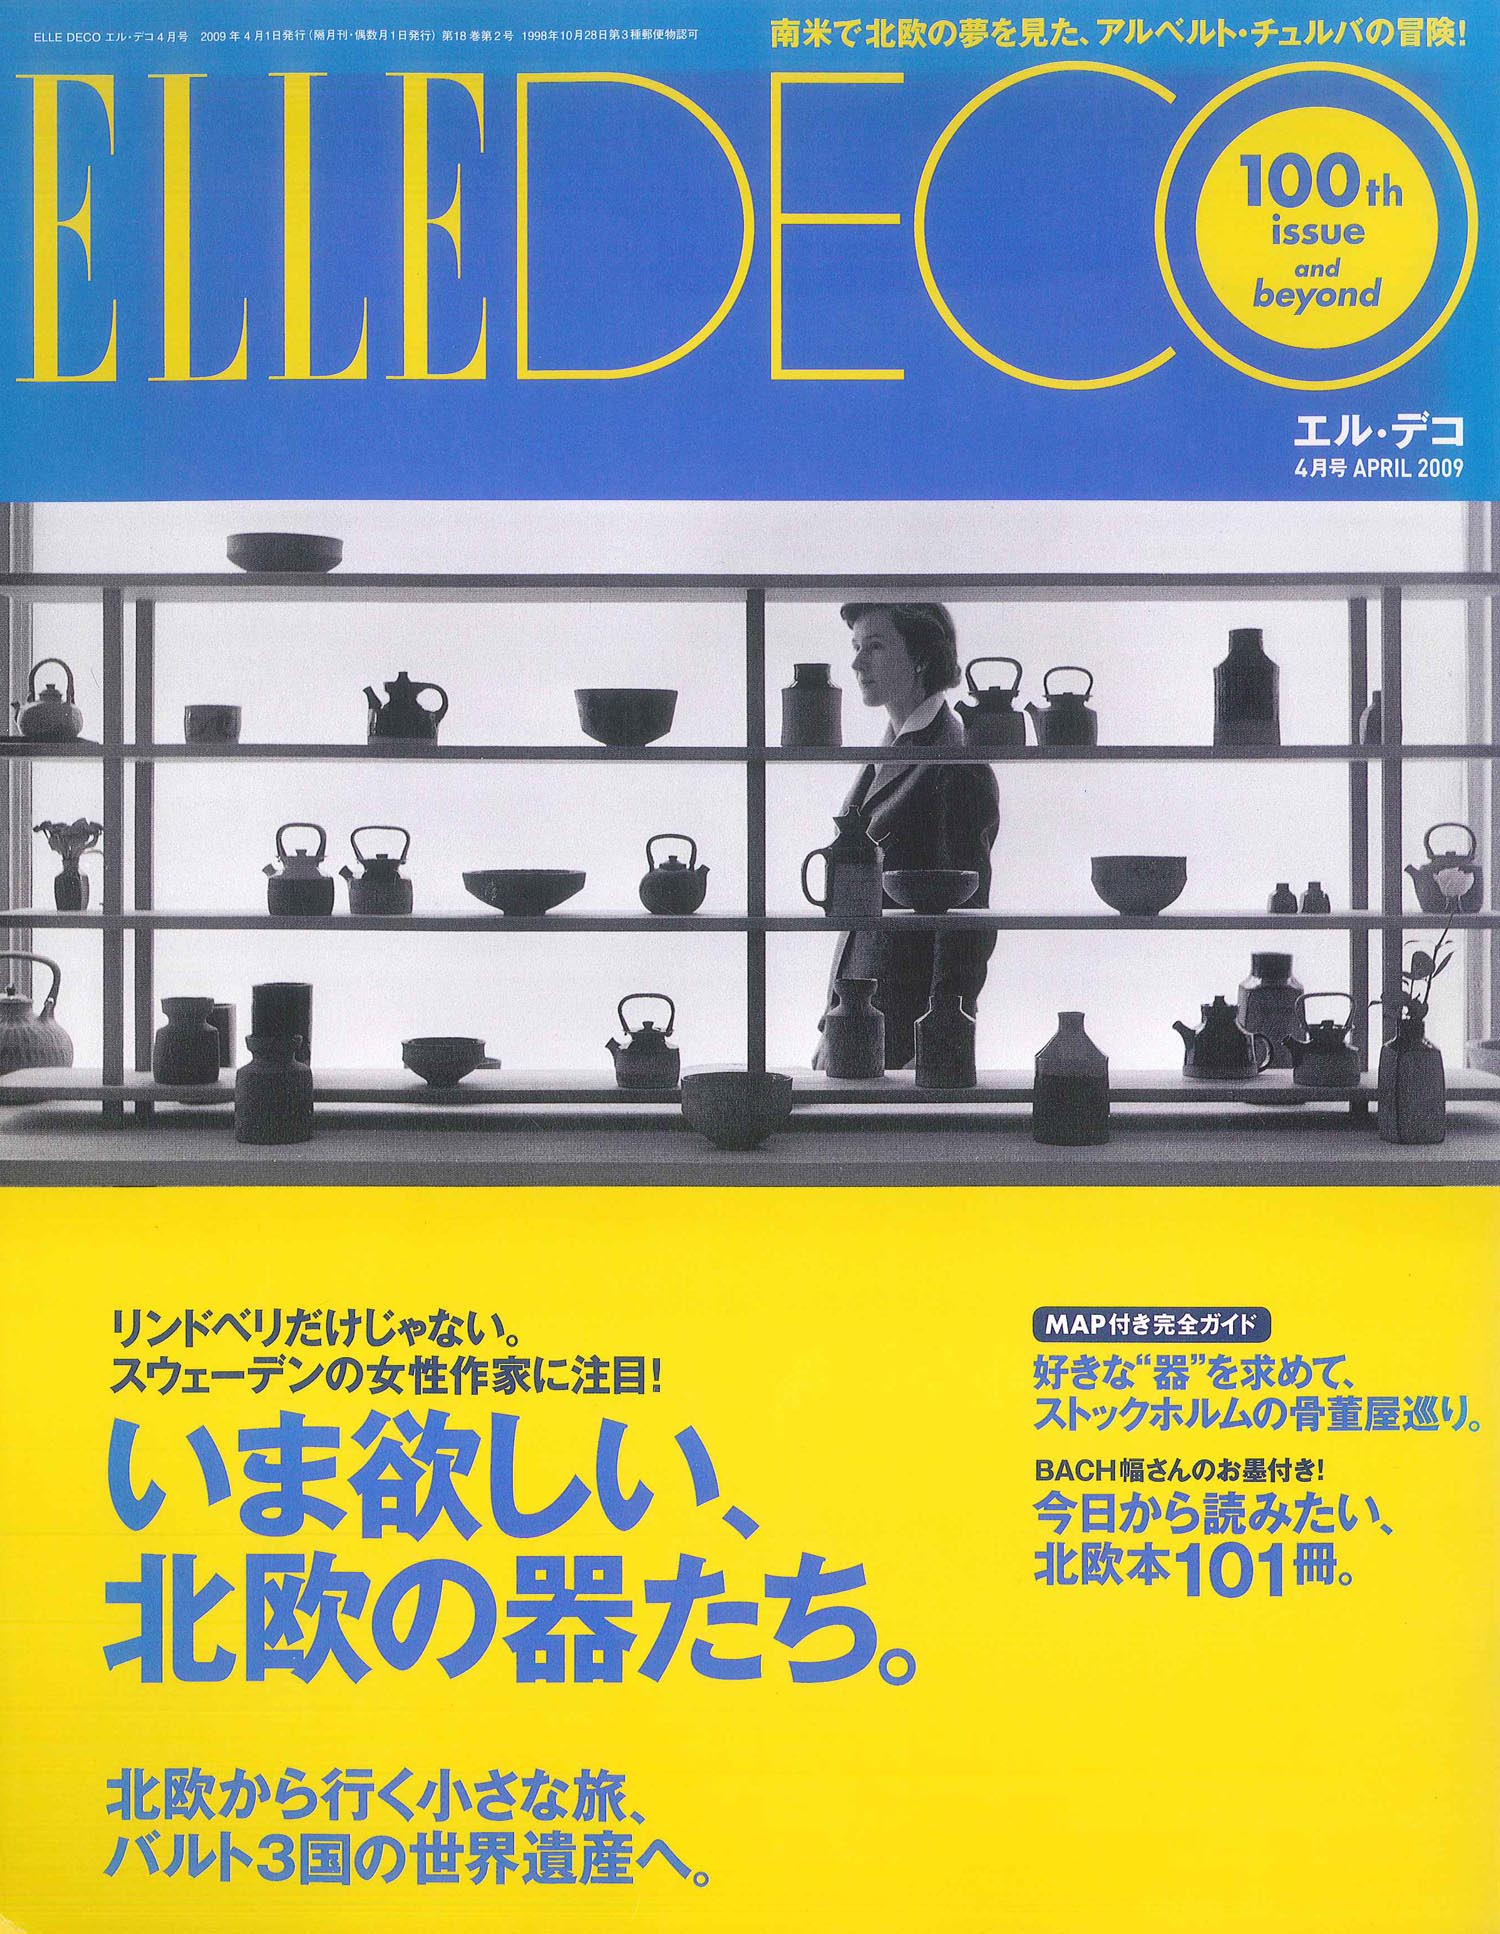 ELLE DECO 100th ISSUE PARTY